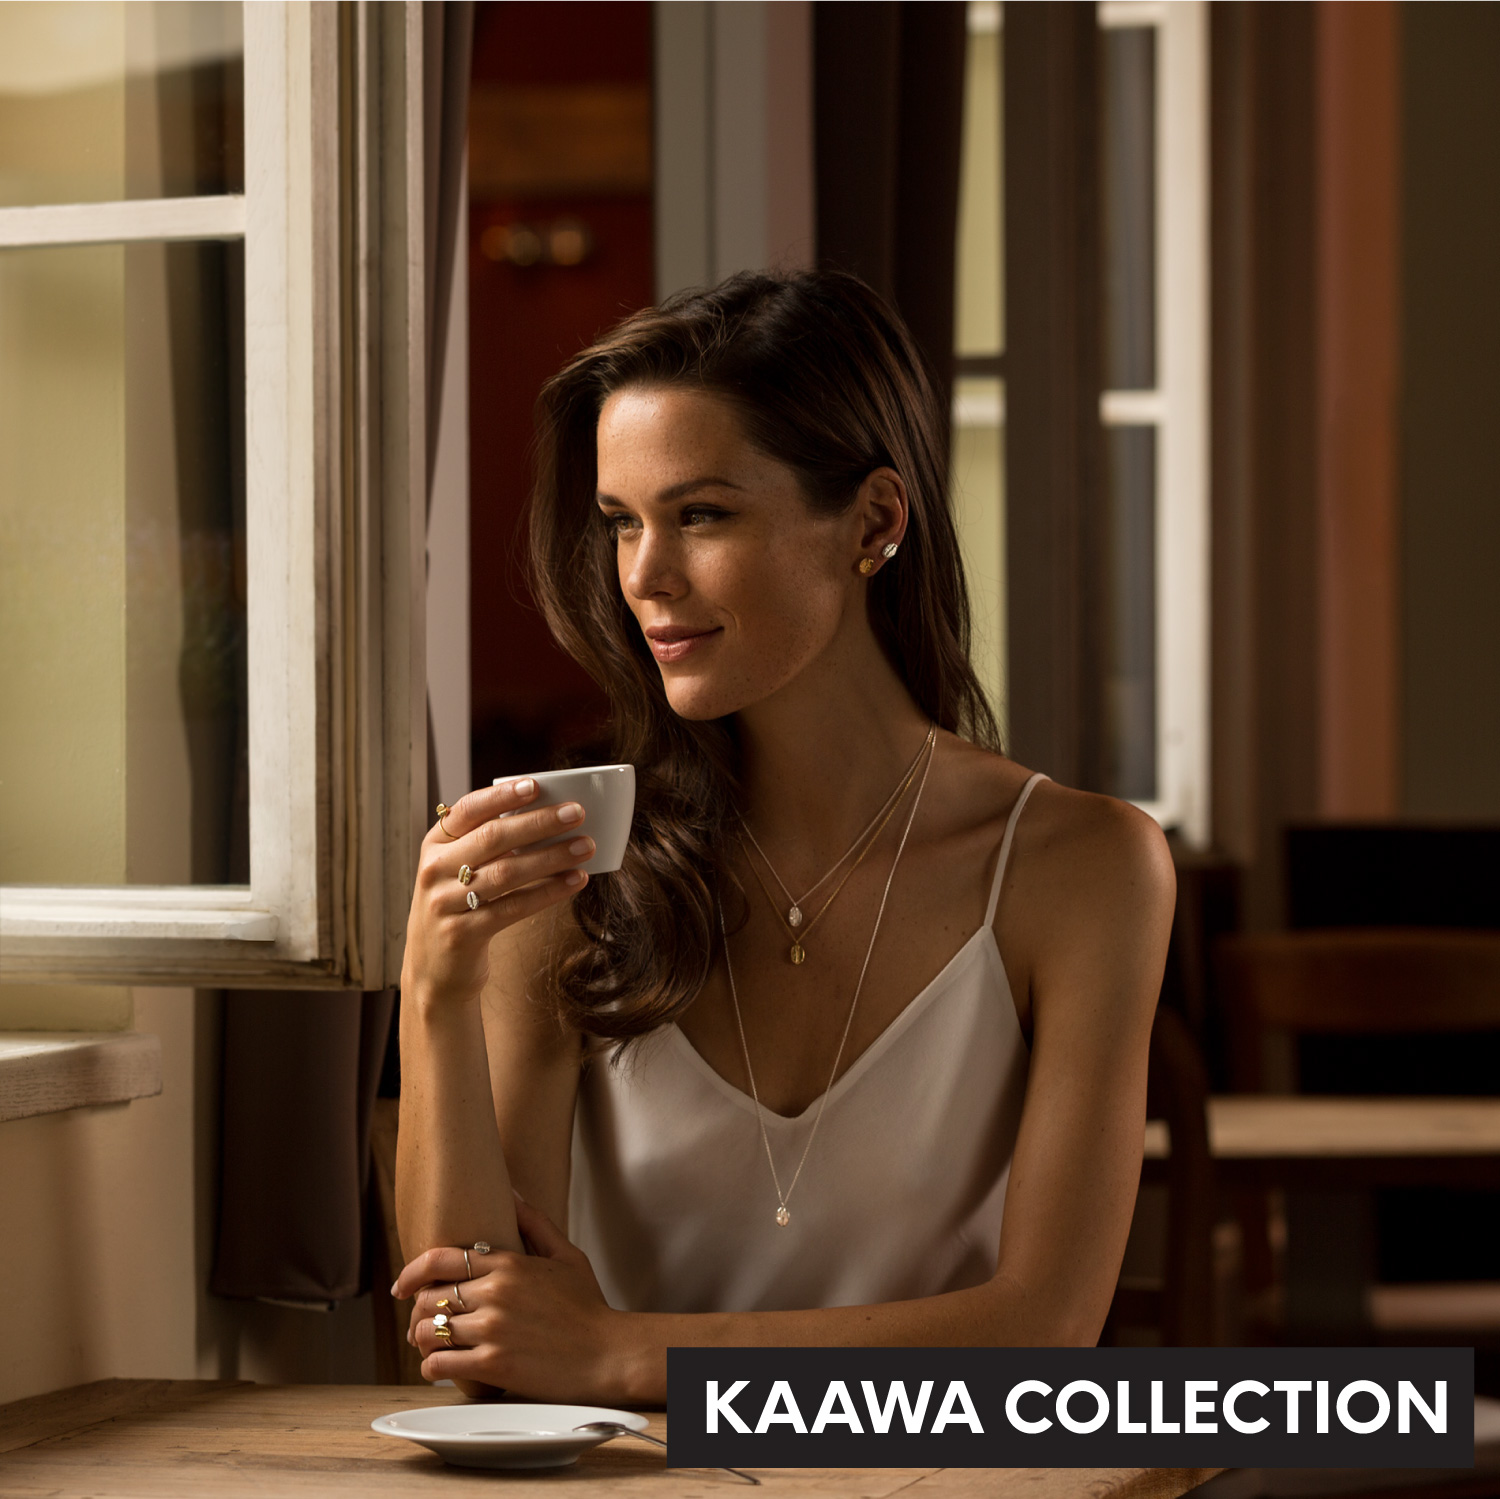 Kaawa collection